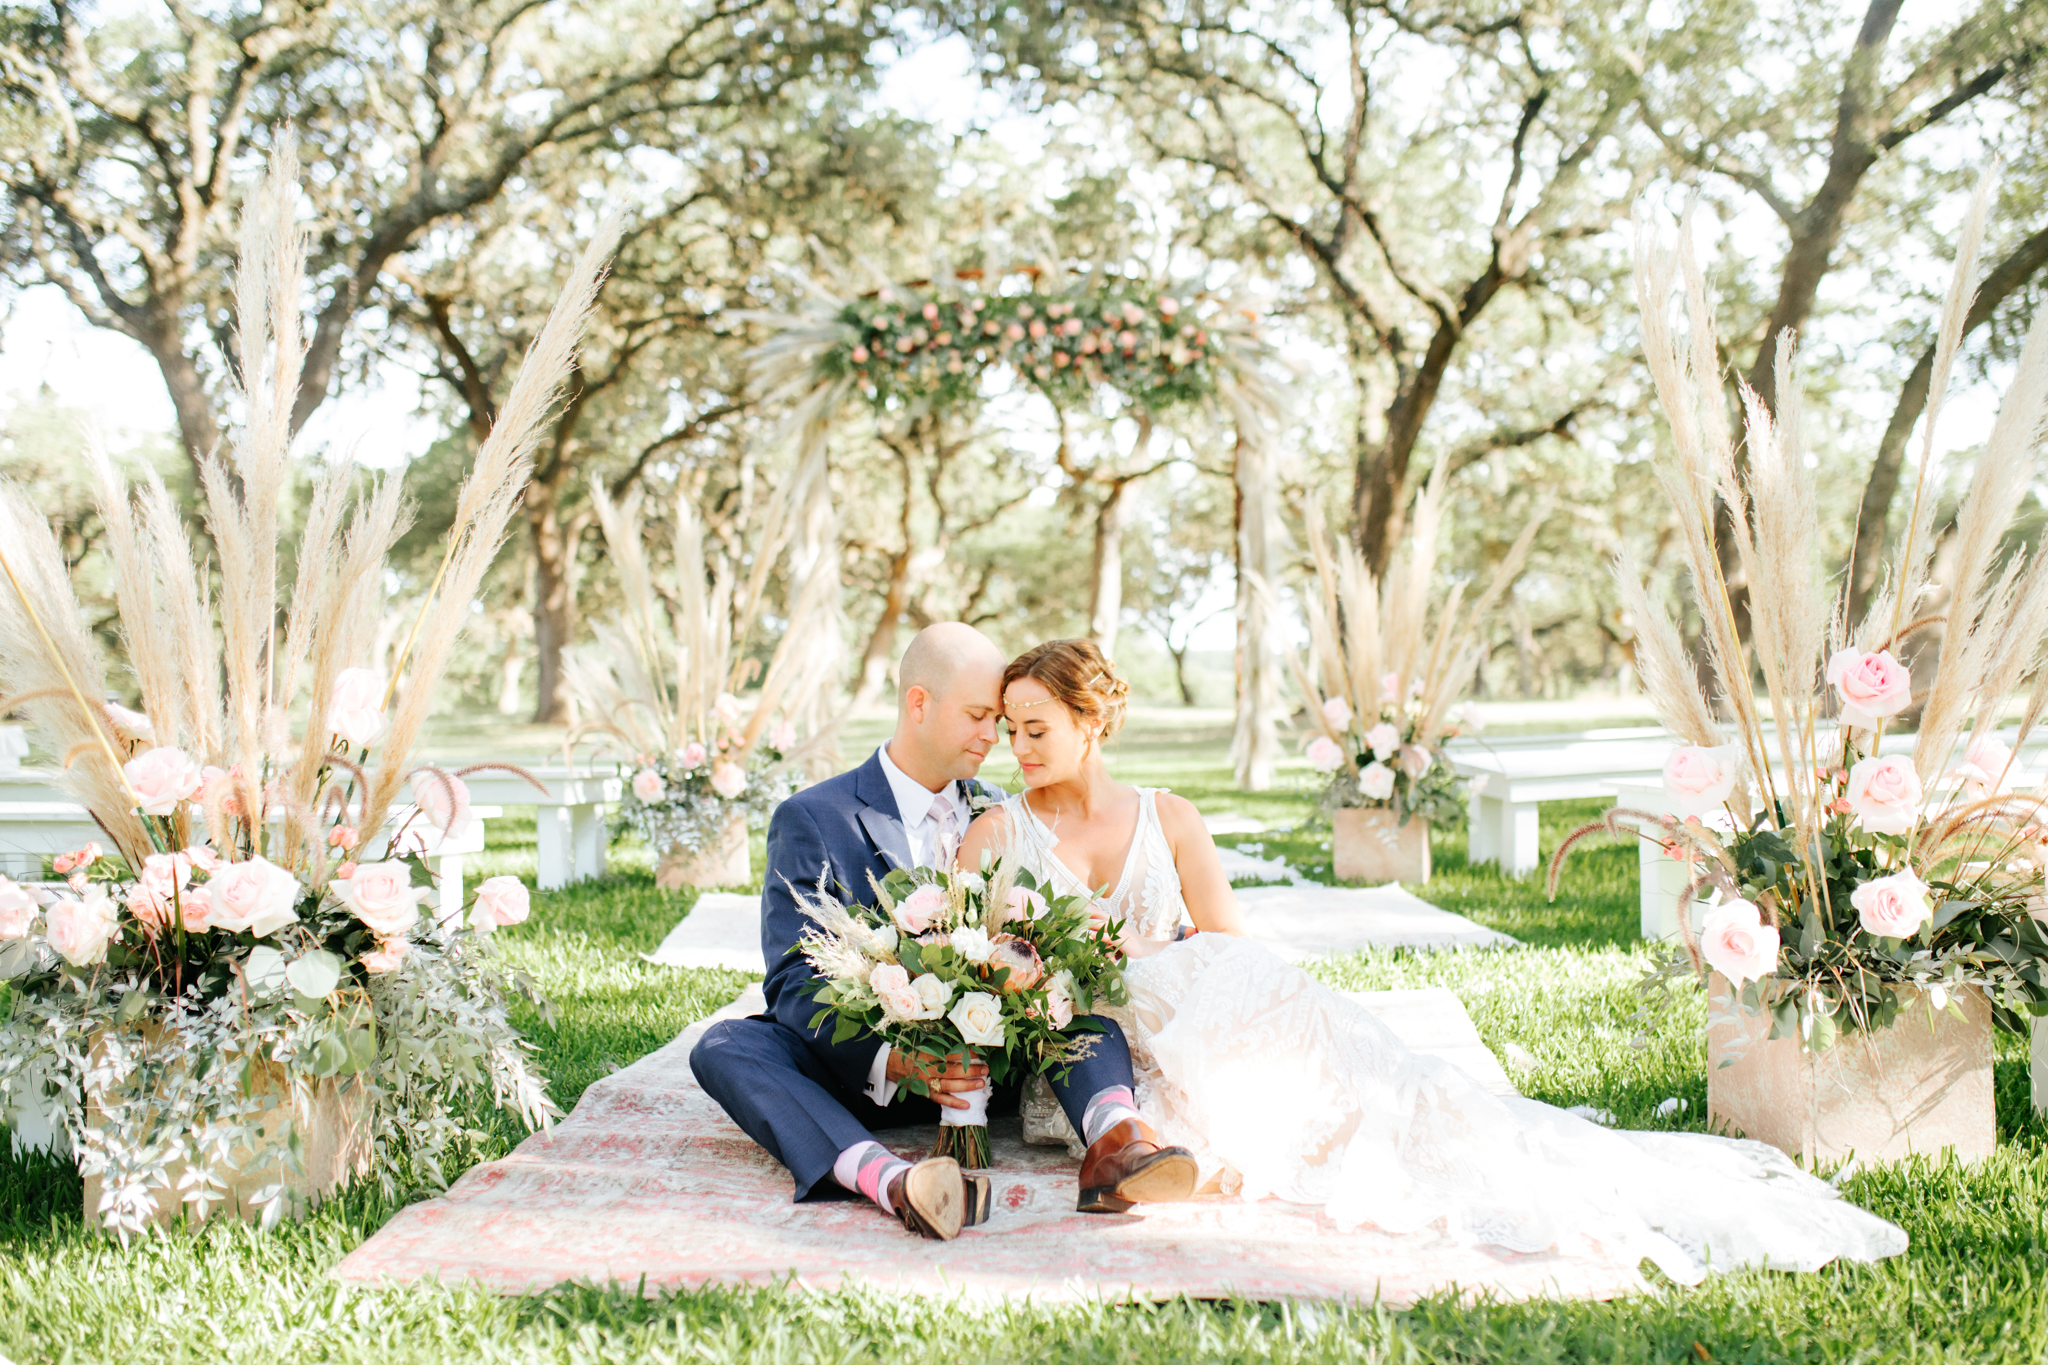 The Oaks at Boerne Wedding Venue